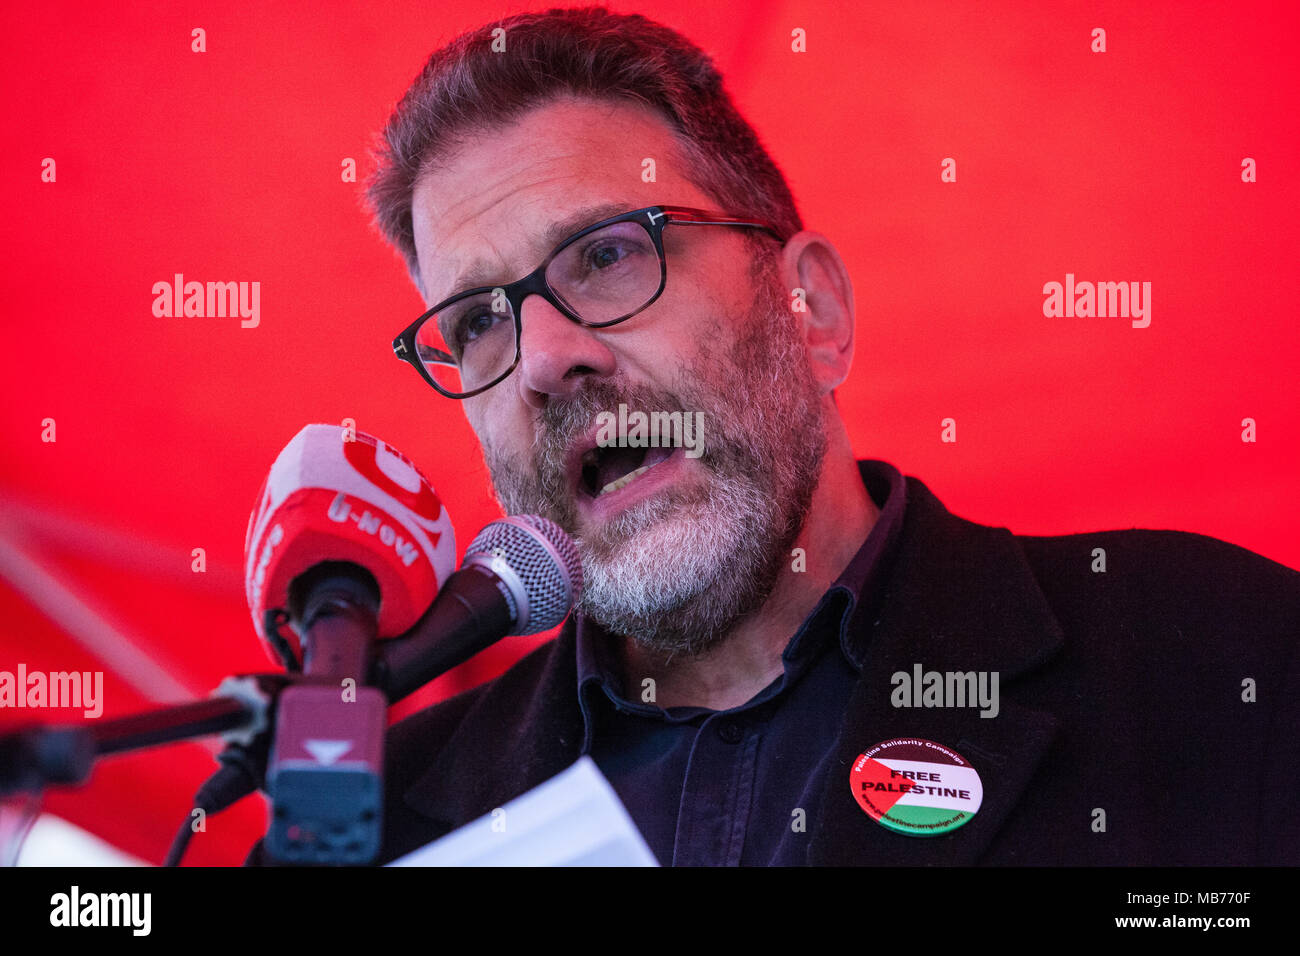 London, UK. 7th April, 2018. Ben Jamal, Director of Palestine Solidarity Campaign, addresses hundreds of people at a rally outside Downing Street in solidarity with Palestinians attending the Great March of Return in Gaza and in protest against the killing there by Israeli snipers using live ammunition of at least 27 unarmed Palestinians and the injury of hundreds more. Credit: Mark Kerrison/Alamy Live News - Stock Image